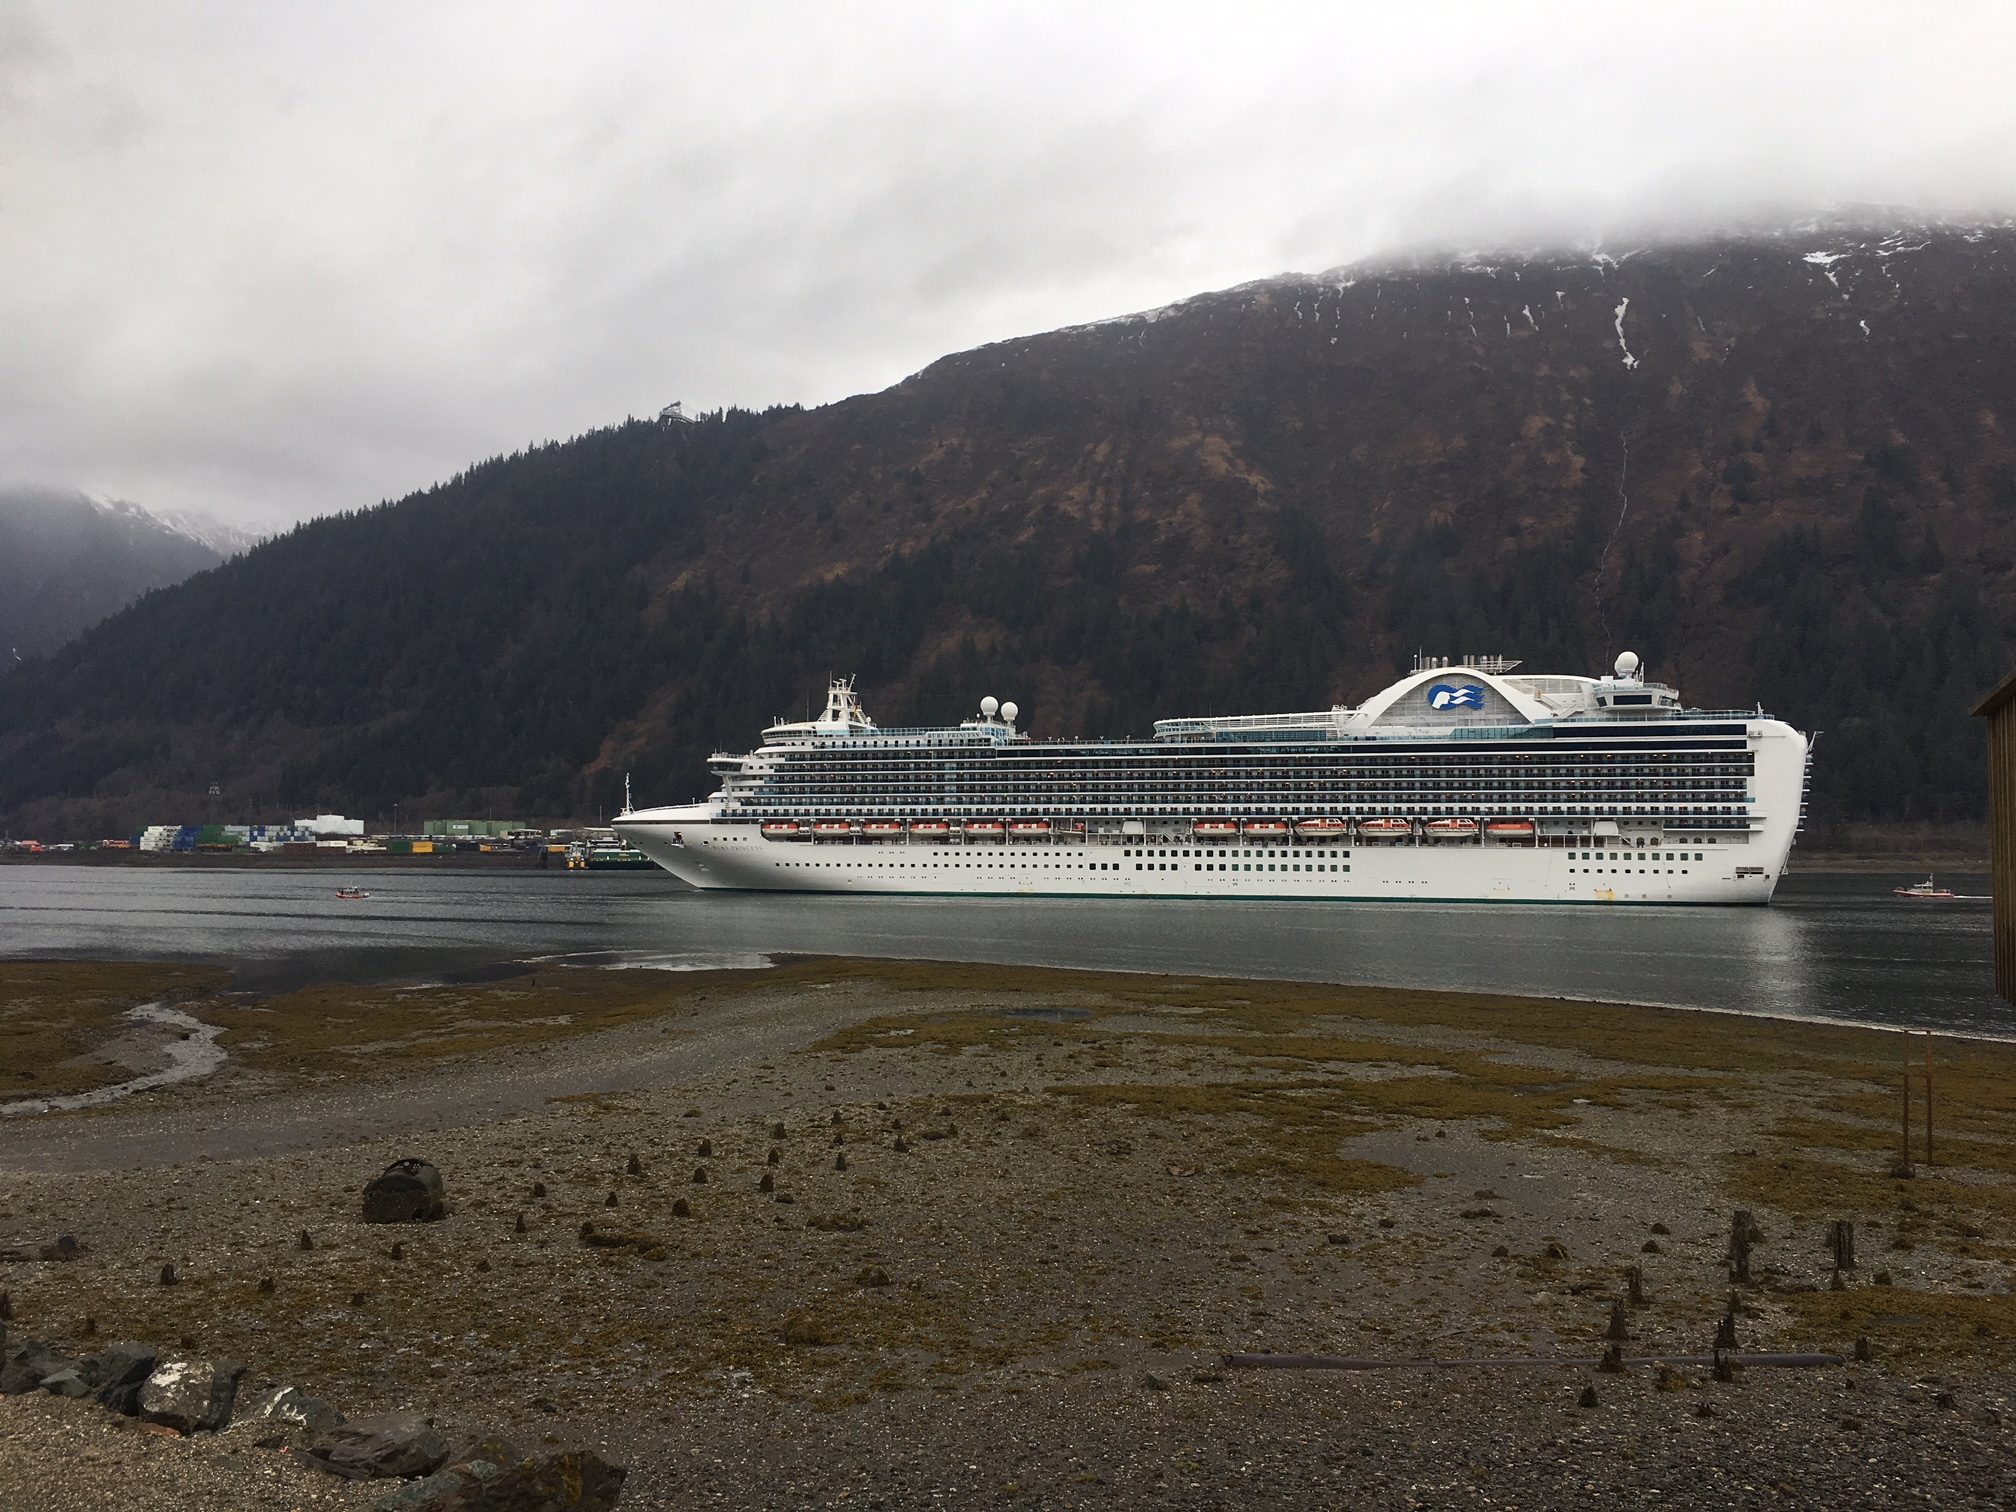 The Ruby Princess docks in Juneau on Monday, April 30, 2018. (Photo by Tim Olson/KTOO)